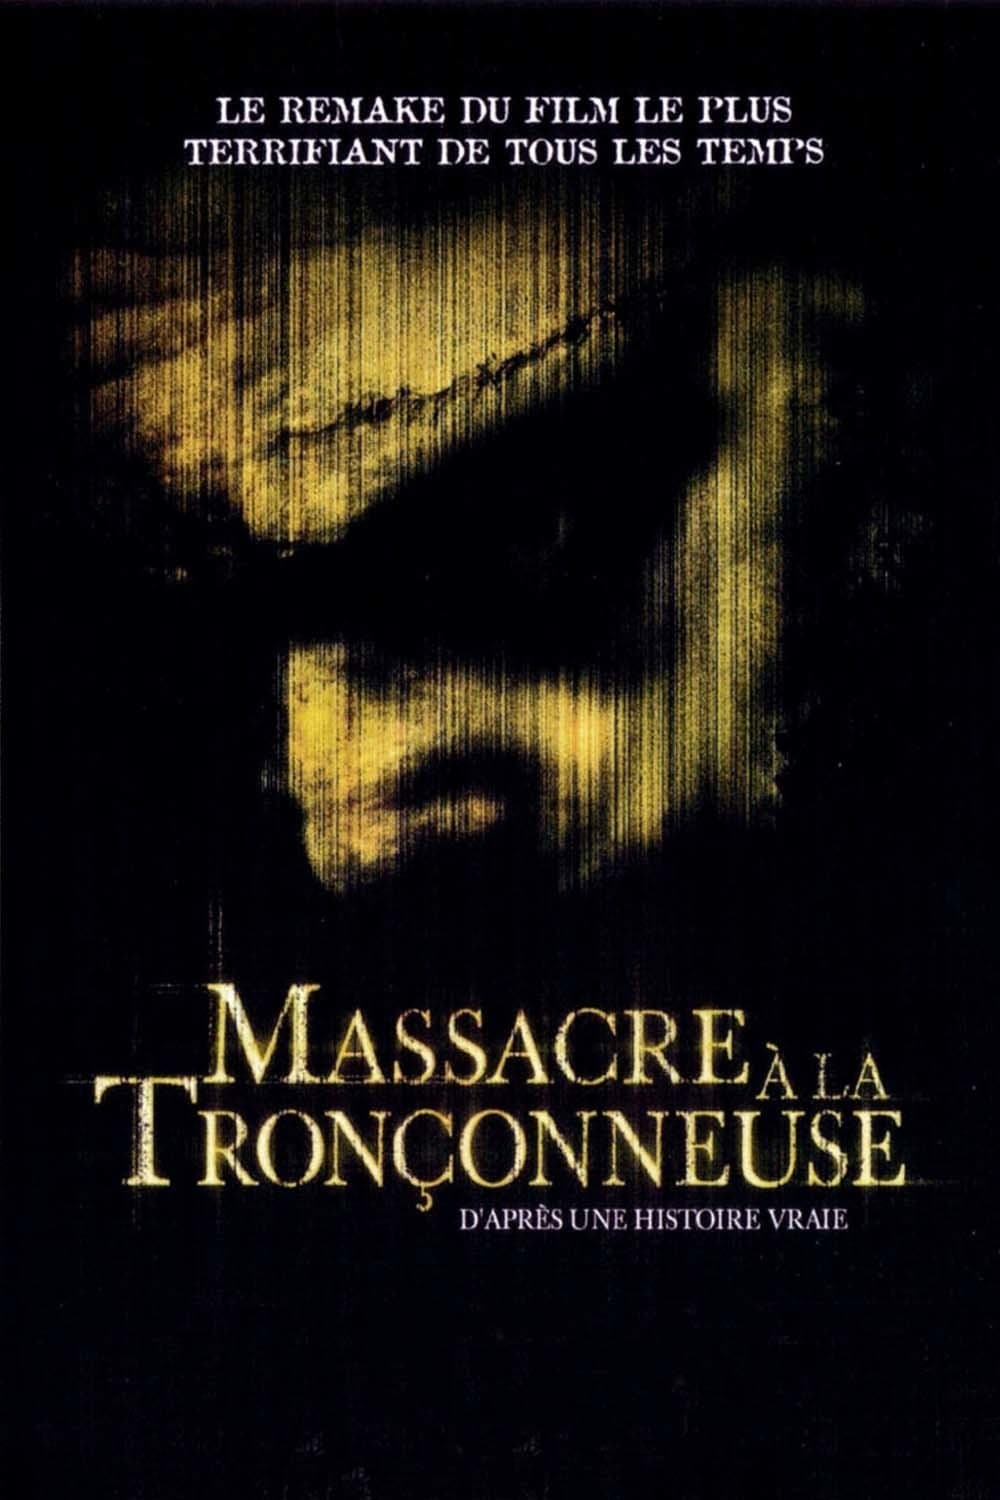 Massacre-La-Tronconneuse-The-Texas-Chainsaw-Massacre-2003-99